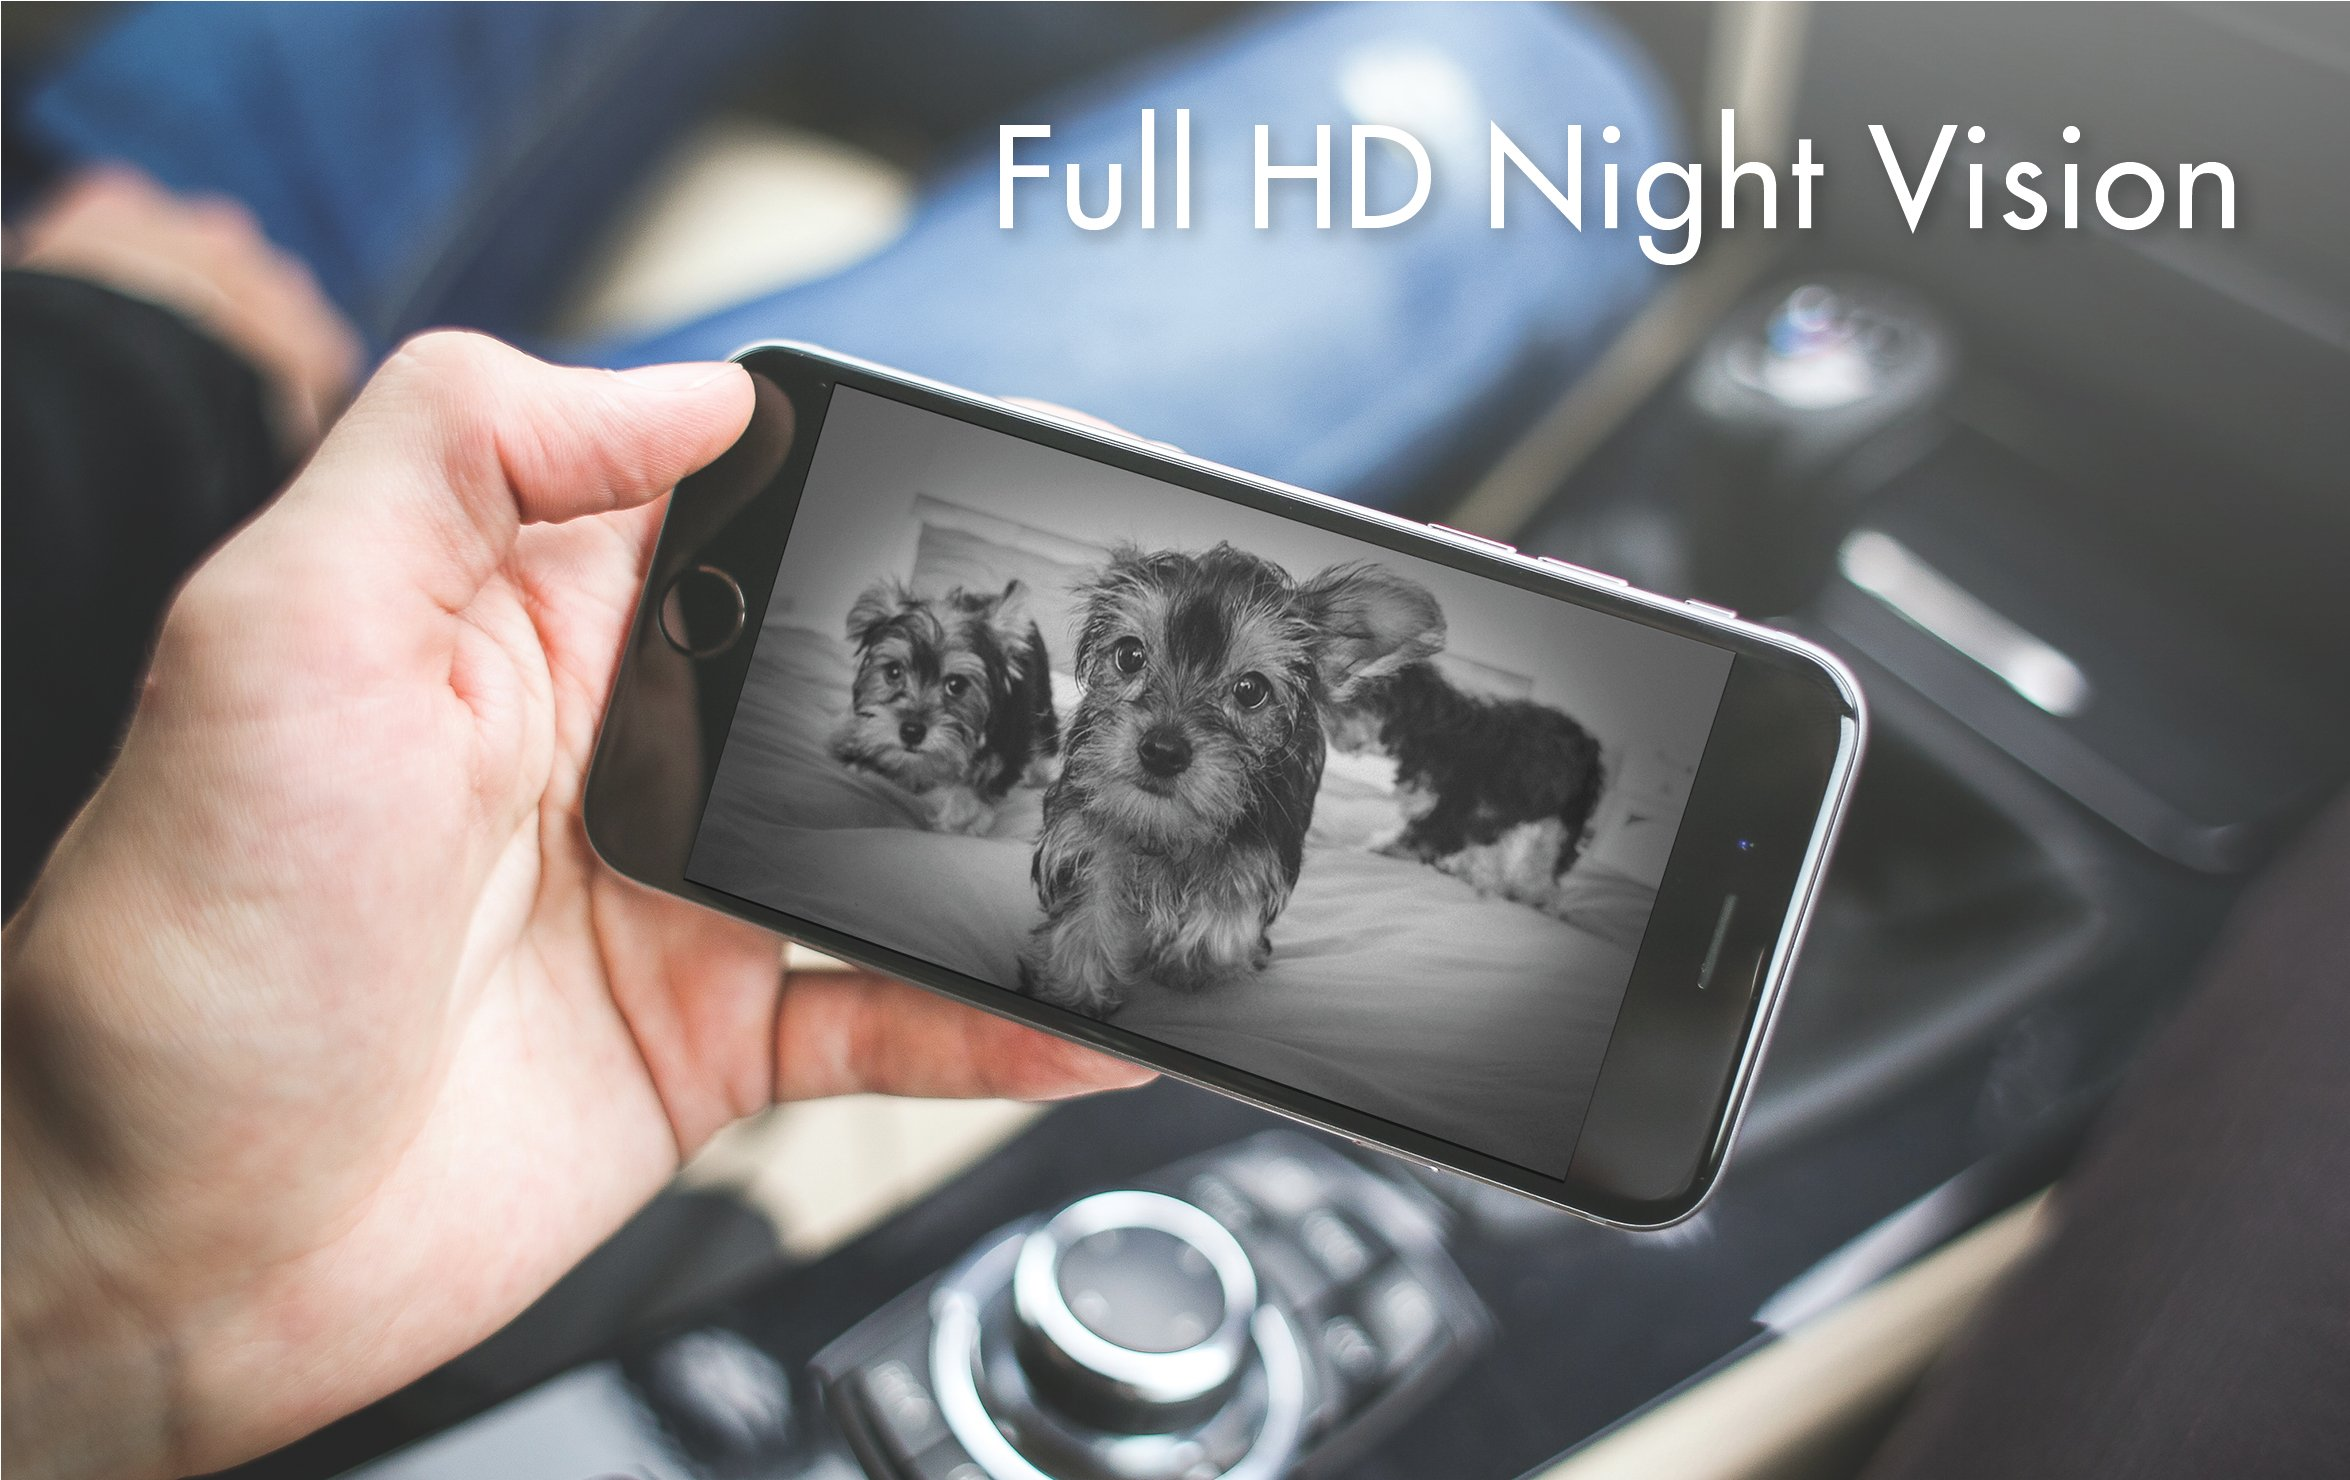 Furbo Dog Camera: Treat Tossing, Full HD Wifi Pet Camera and 2-Way Audio, Designed for Dogs, Compatible with Alexa (As Seen On Ellen) 5